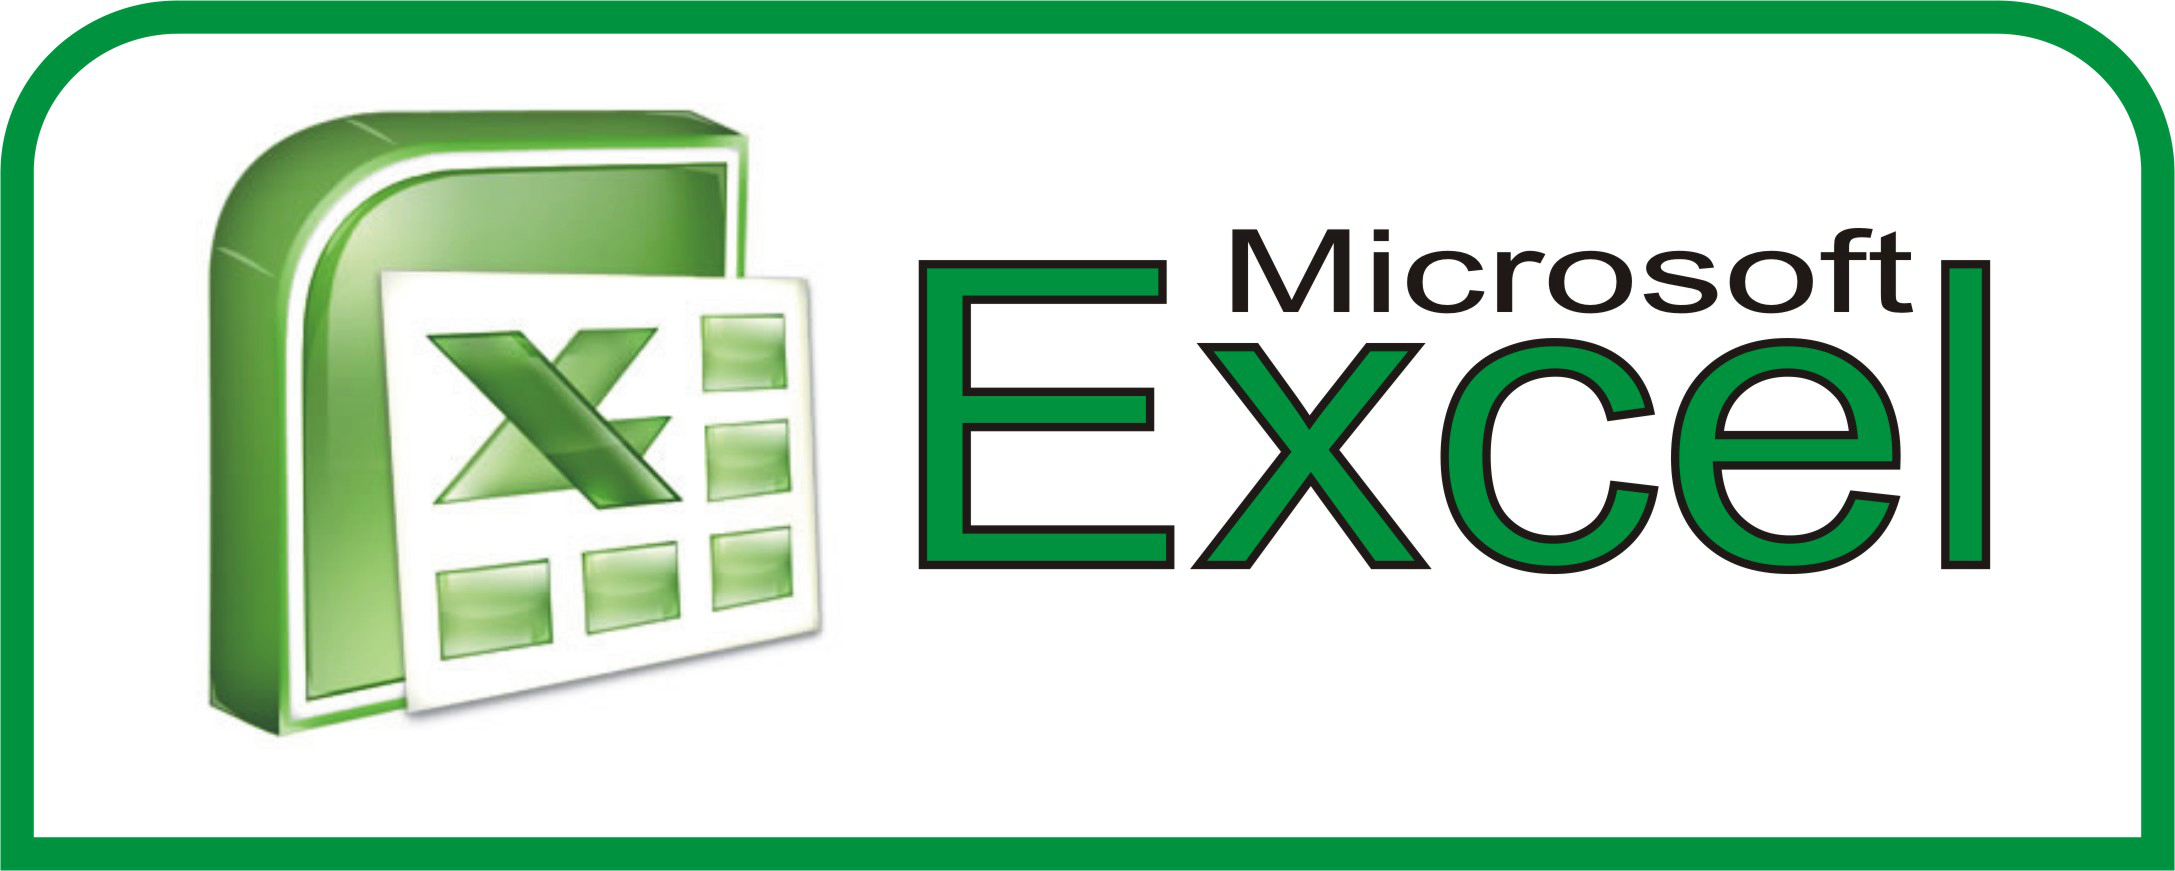 Ediblewildsus  Terrific  Excel Shortcuts You Probably Didnt Know About  Techdissected With Fetching Vba Coding In Excel Besides Free Monthly Budget Spreadsheet Excel Furthermore Merge Cells In Excel  With Beautiful Free Excel Dashboard Also Vba Excel If Statement In Addition Daily Timesheet Excel Template And User Form Excel As Well As Daily Log Template Excel Additionally Charts In Excel  From Techdissectedcom With Ediblewildsus  Fetching  Excel Shortcuts You Probably Didnt Know About  Techdissected With Beautiful Vba Coding In Excel Besides Free Monthly Budget Spreadsheet Excel Furthermore Merge Cells In Excel  And Terrific Free Excel Dashboard Also Vba Excel If Statement In Addition Daily Timesheet Excel Template From Techdissectedcom